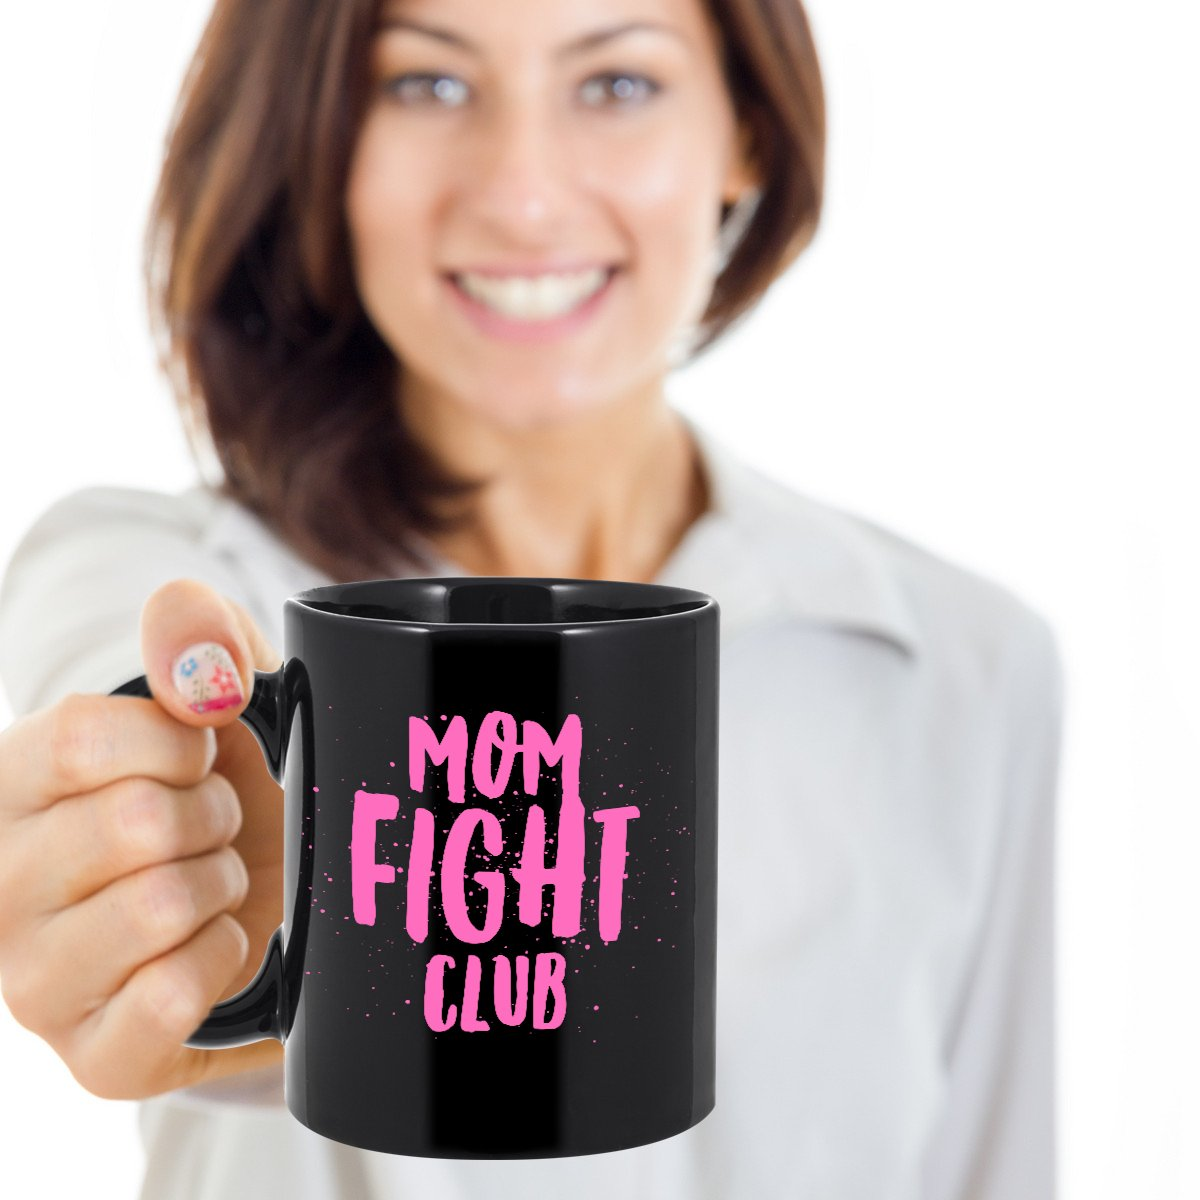 Here's how I #DisappointYourMotherIn3Words #MomFightClub  https://www.gearbubble.com/momfightmug